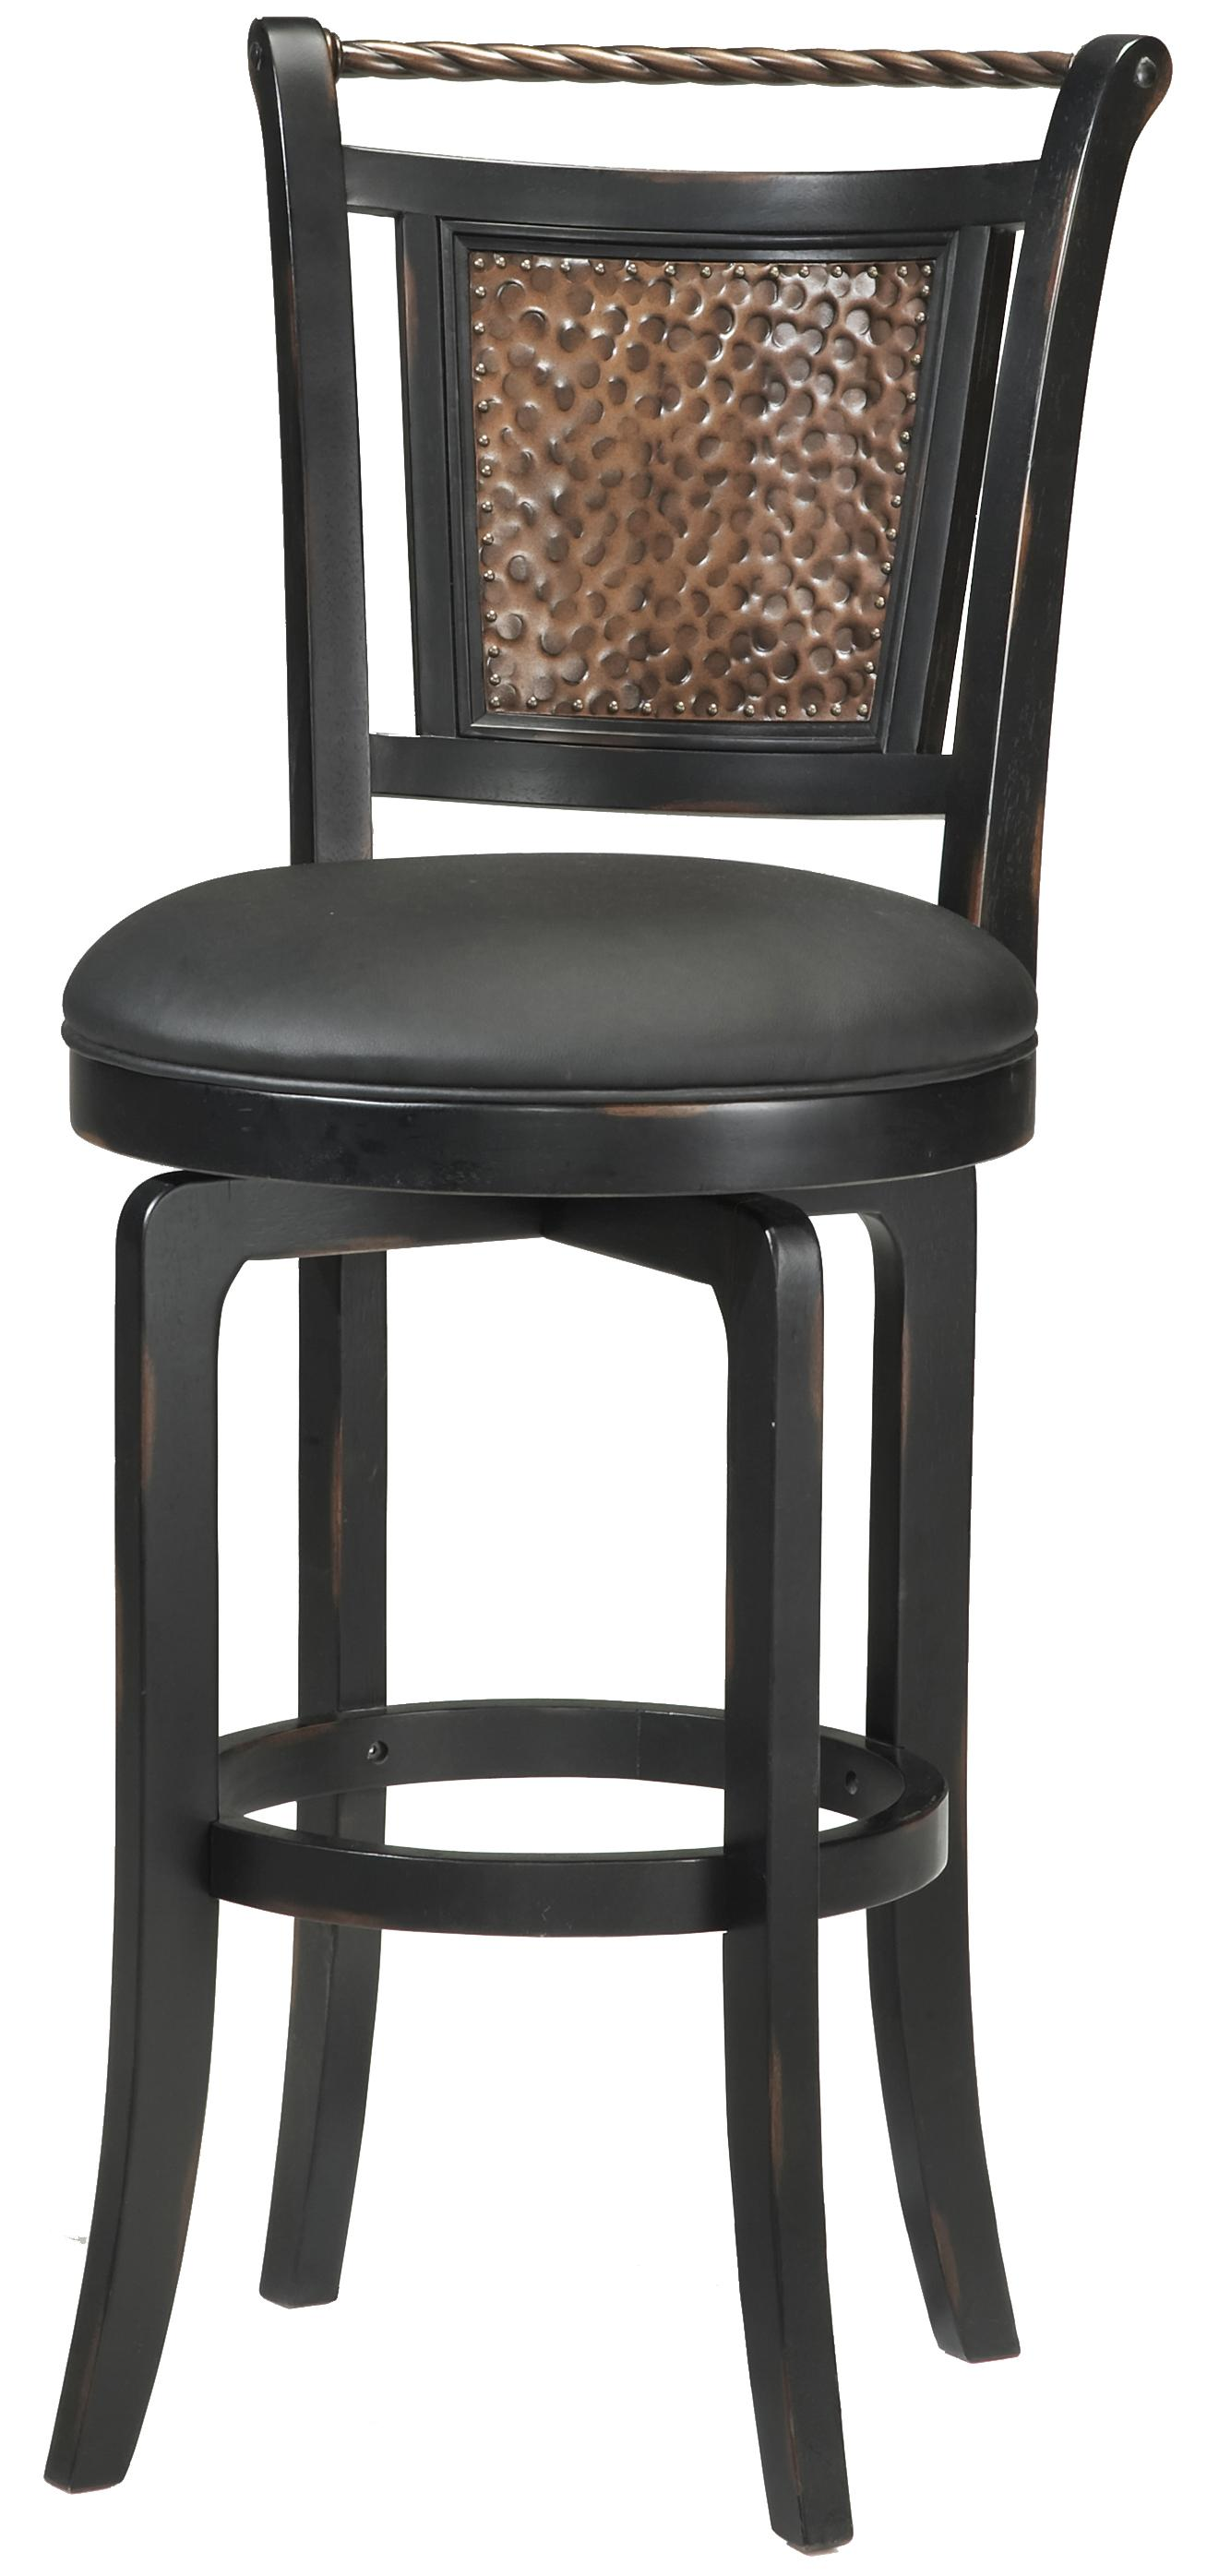 Hillsdale Wood Stools 26 5 Quot Counter Height Norwood Swivel